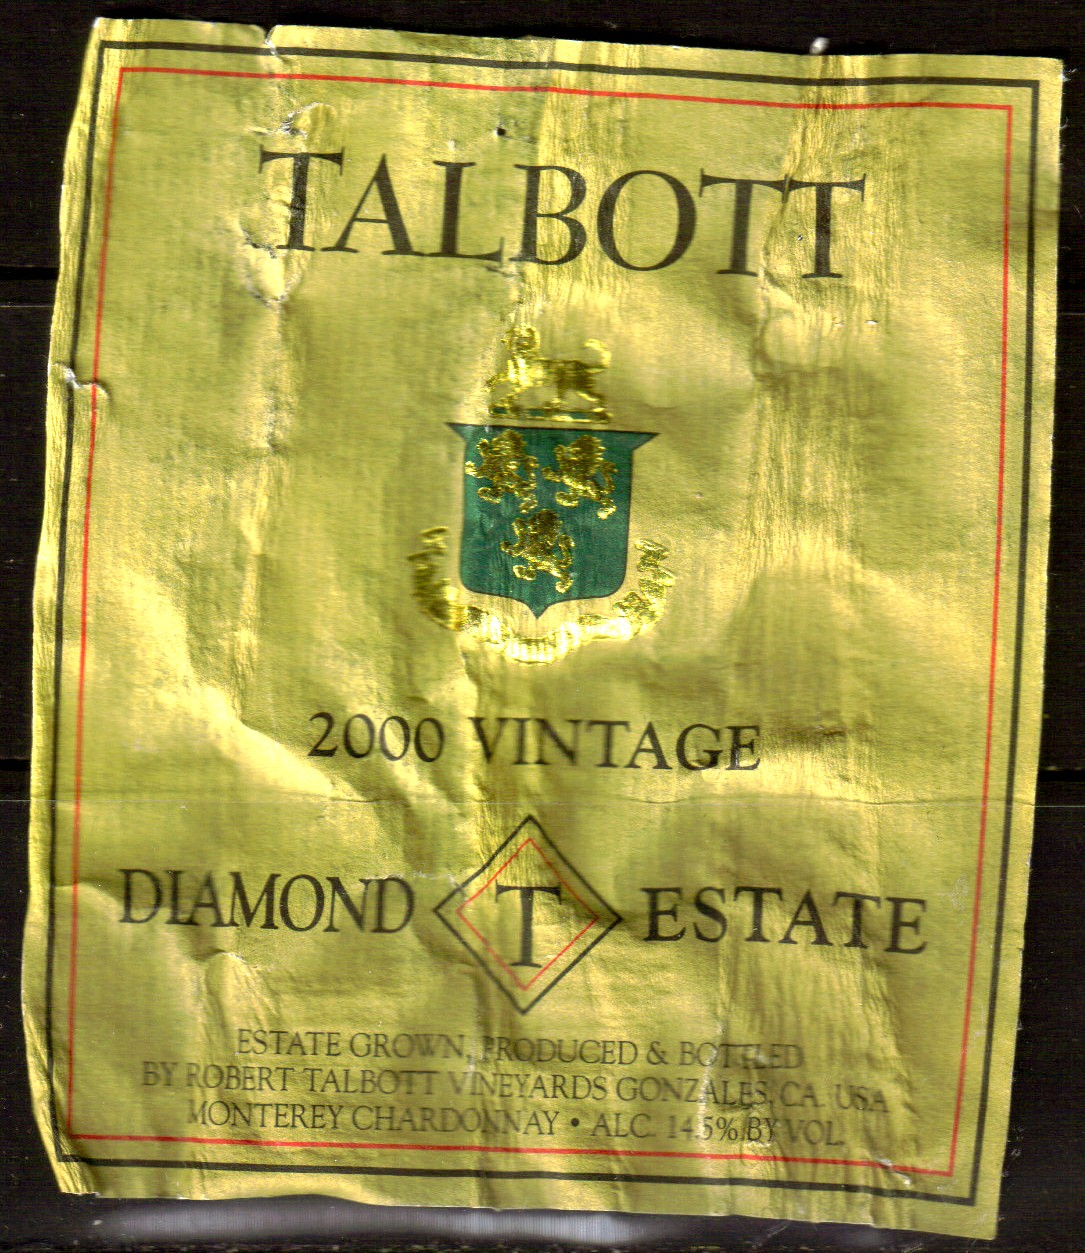 talbott personals Gloria talbott (actress) photo galleries, news, relationships and more on spokeo.